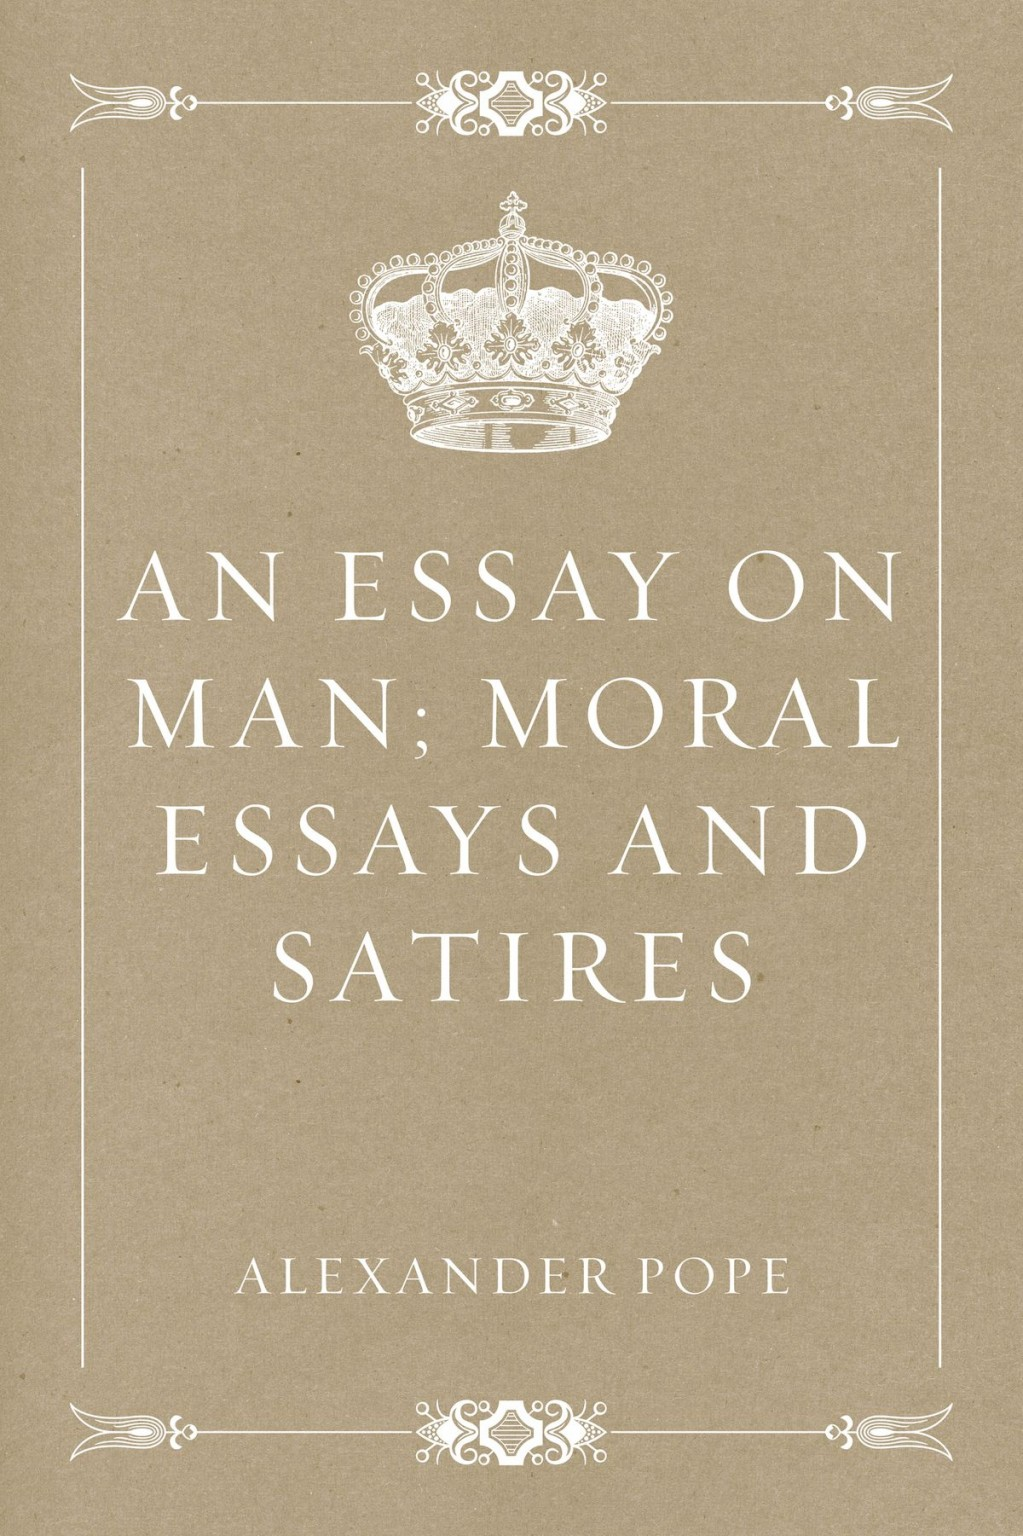 004 Essay Example On Man An Moral Essays And Satires Stirring By Alexander Pope Analysis Pdf Critical Manners Reveal Character Large